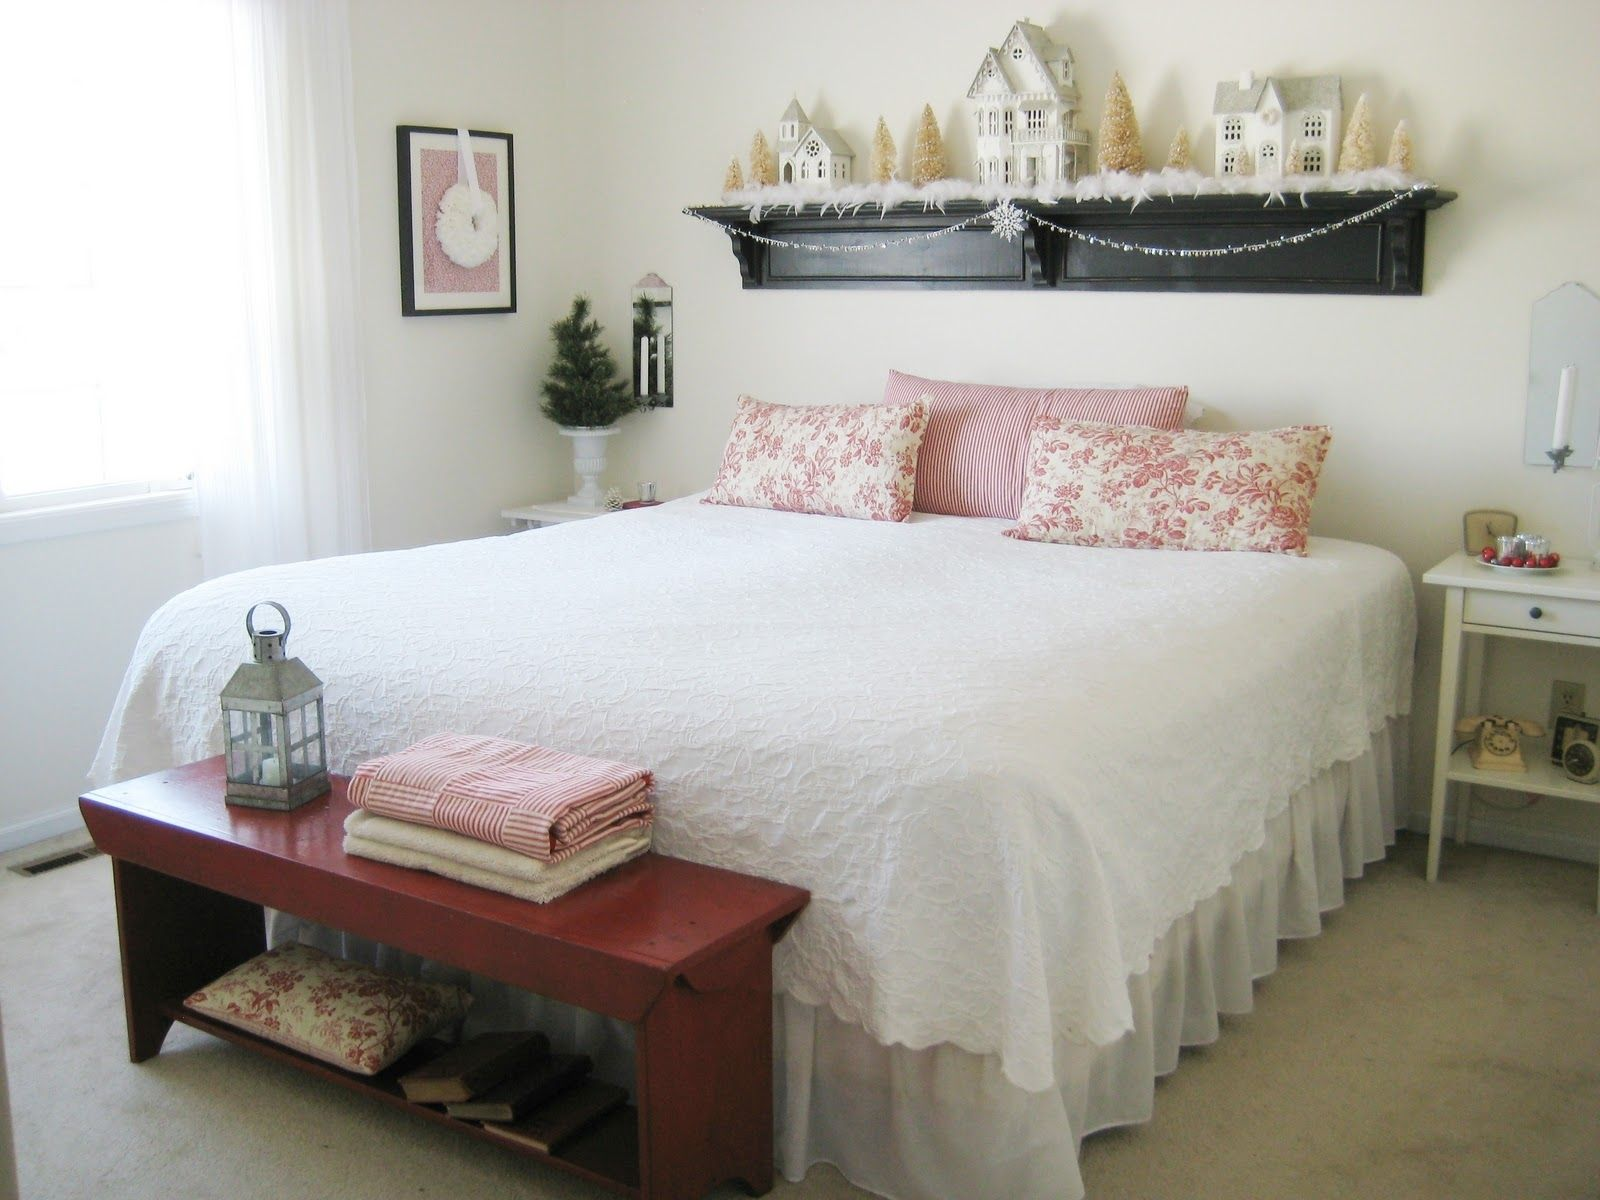 Cute How To Decorate Small Room With Queen Bed And Also